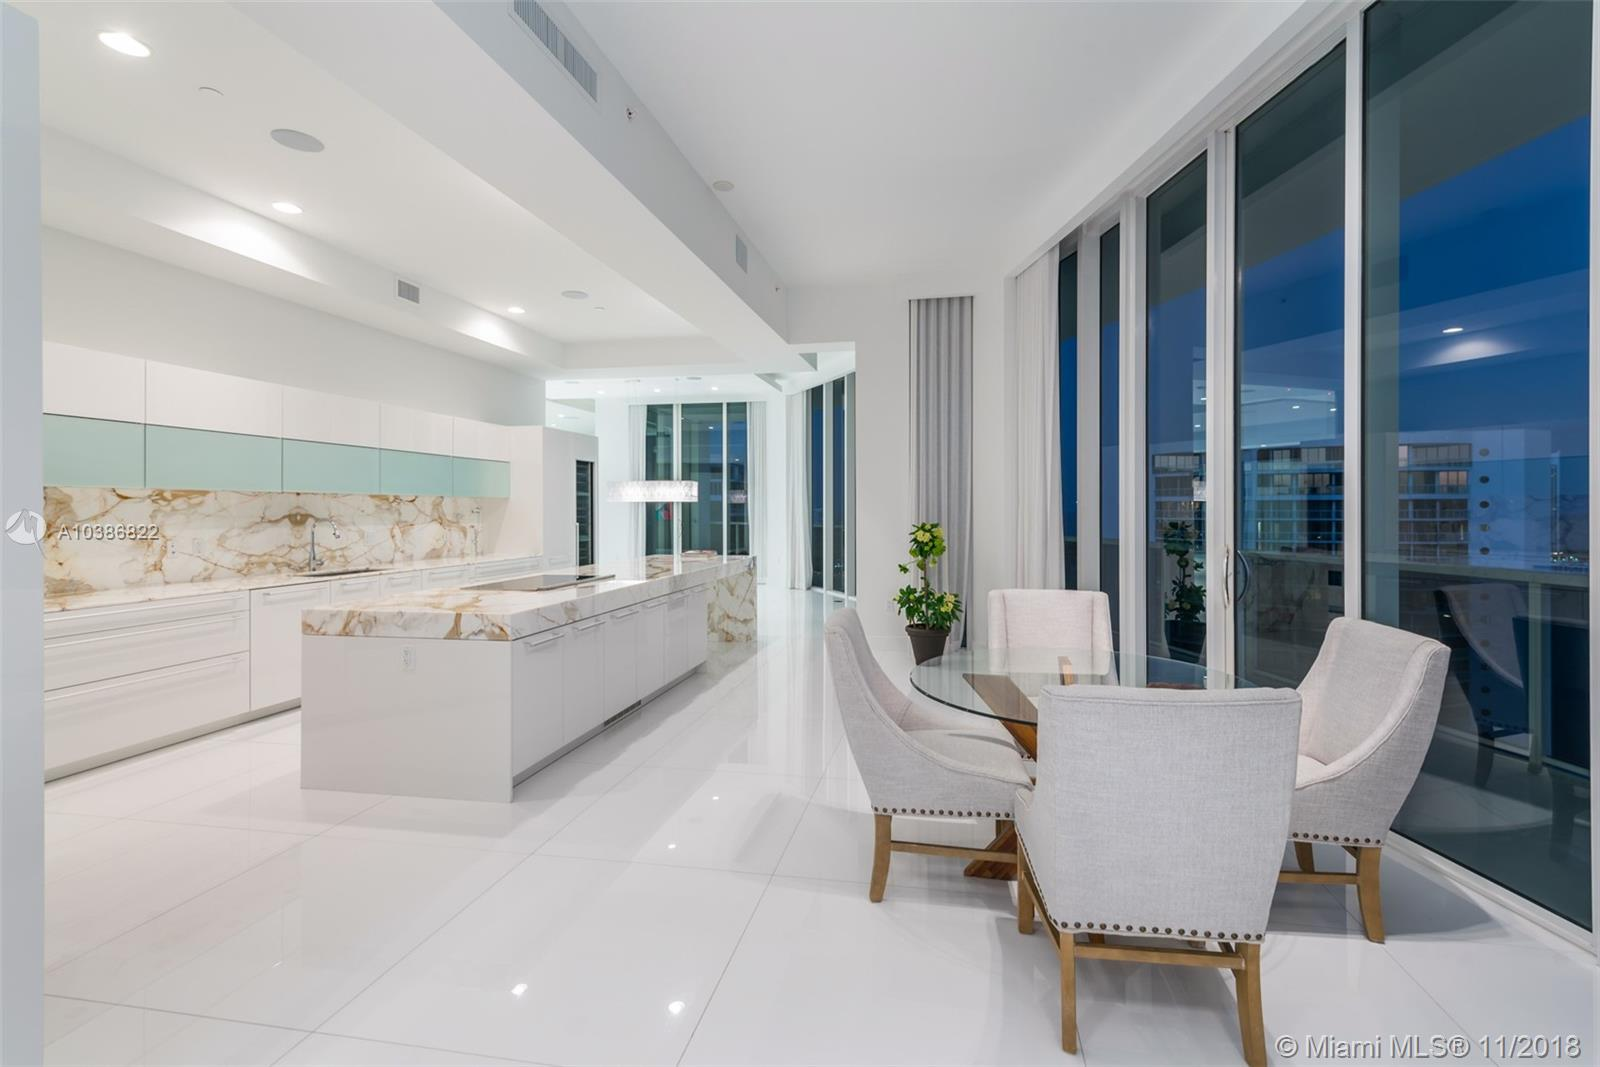 Bellini Williams Island Southeast Corner Penthouse! Breathtaking panoramic water views through 12' floor-to-ceiling windows greet you as you enter through your private foyer. Former developer model 4,955 SF unit offers the ultimate in luxurious upgrades, open floor plan & custom gourmet kitchen designed by world celebrated Chef Erik Ripert. This 4BD, 6 full & 1 half BA unit also features an expansive master suite, his/hers master bathrooms, top-of-the-line appliances, marble countertops coffee and espresso maker, island seating & wine storage unit. Wraparound balconies offer unobstructed 180-degree water views of the intracoastal & Atlantic Ocean. The Williams Island lifestyle offers 5 star amens: 27,000 sq ft gym & spa, island club, 16 tennis courts, private marina, & restaurant.